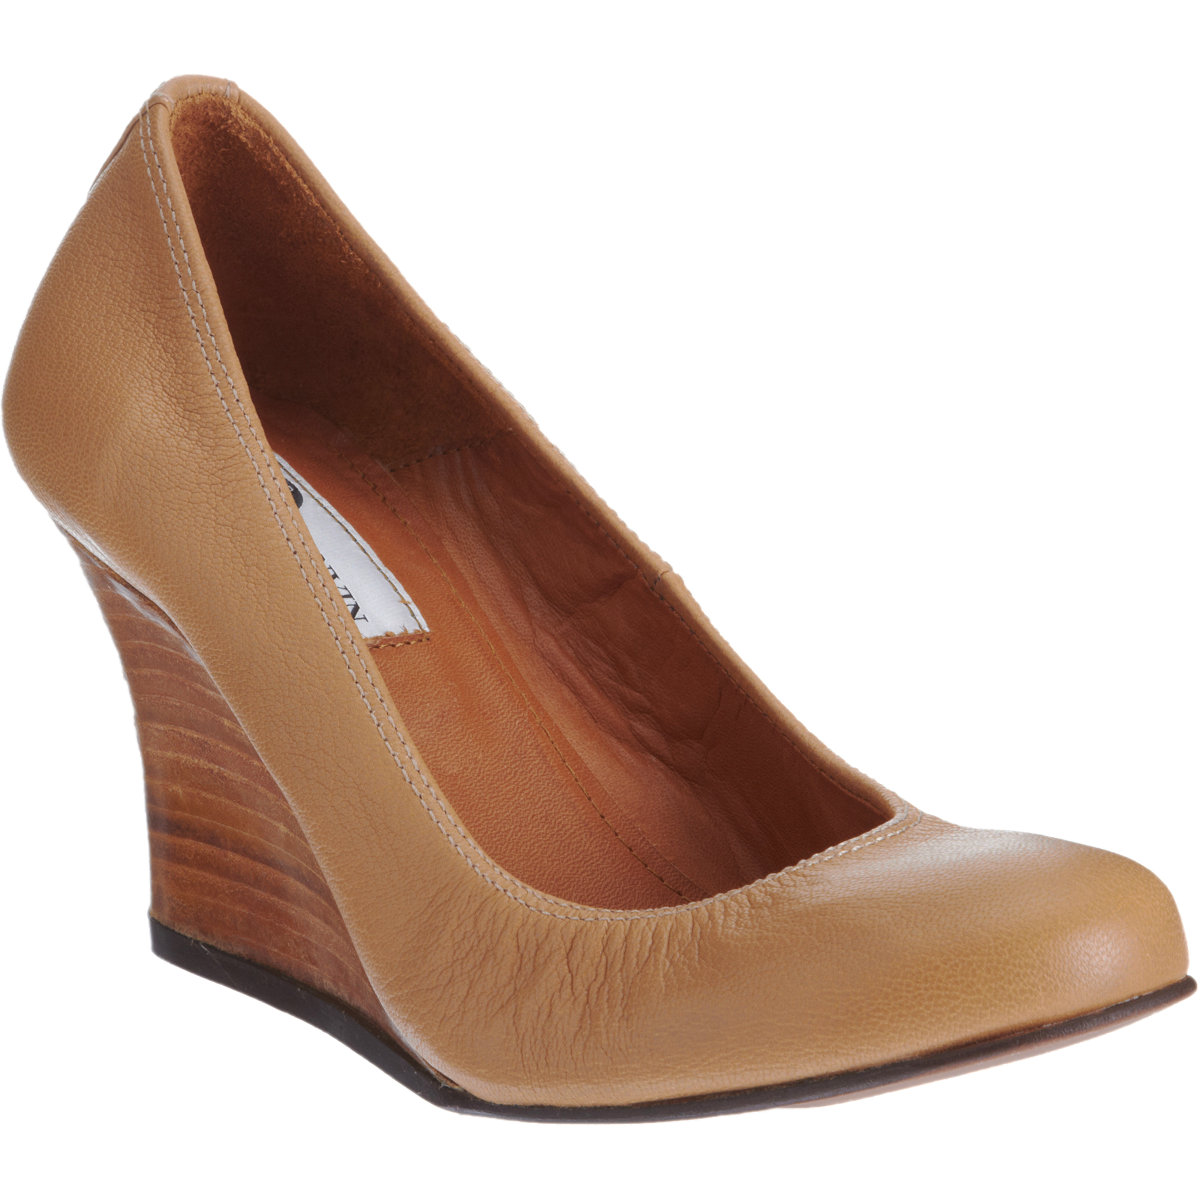 Shop a great selection of Wedge Heels at Nordstrom Rack. Find designer Wedge Heels up to 70% off and get free shipping on orders over $